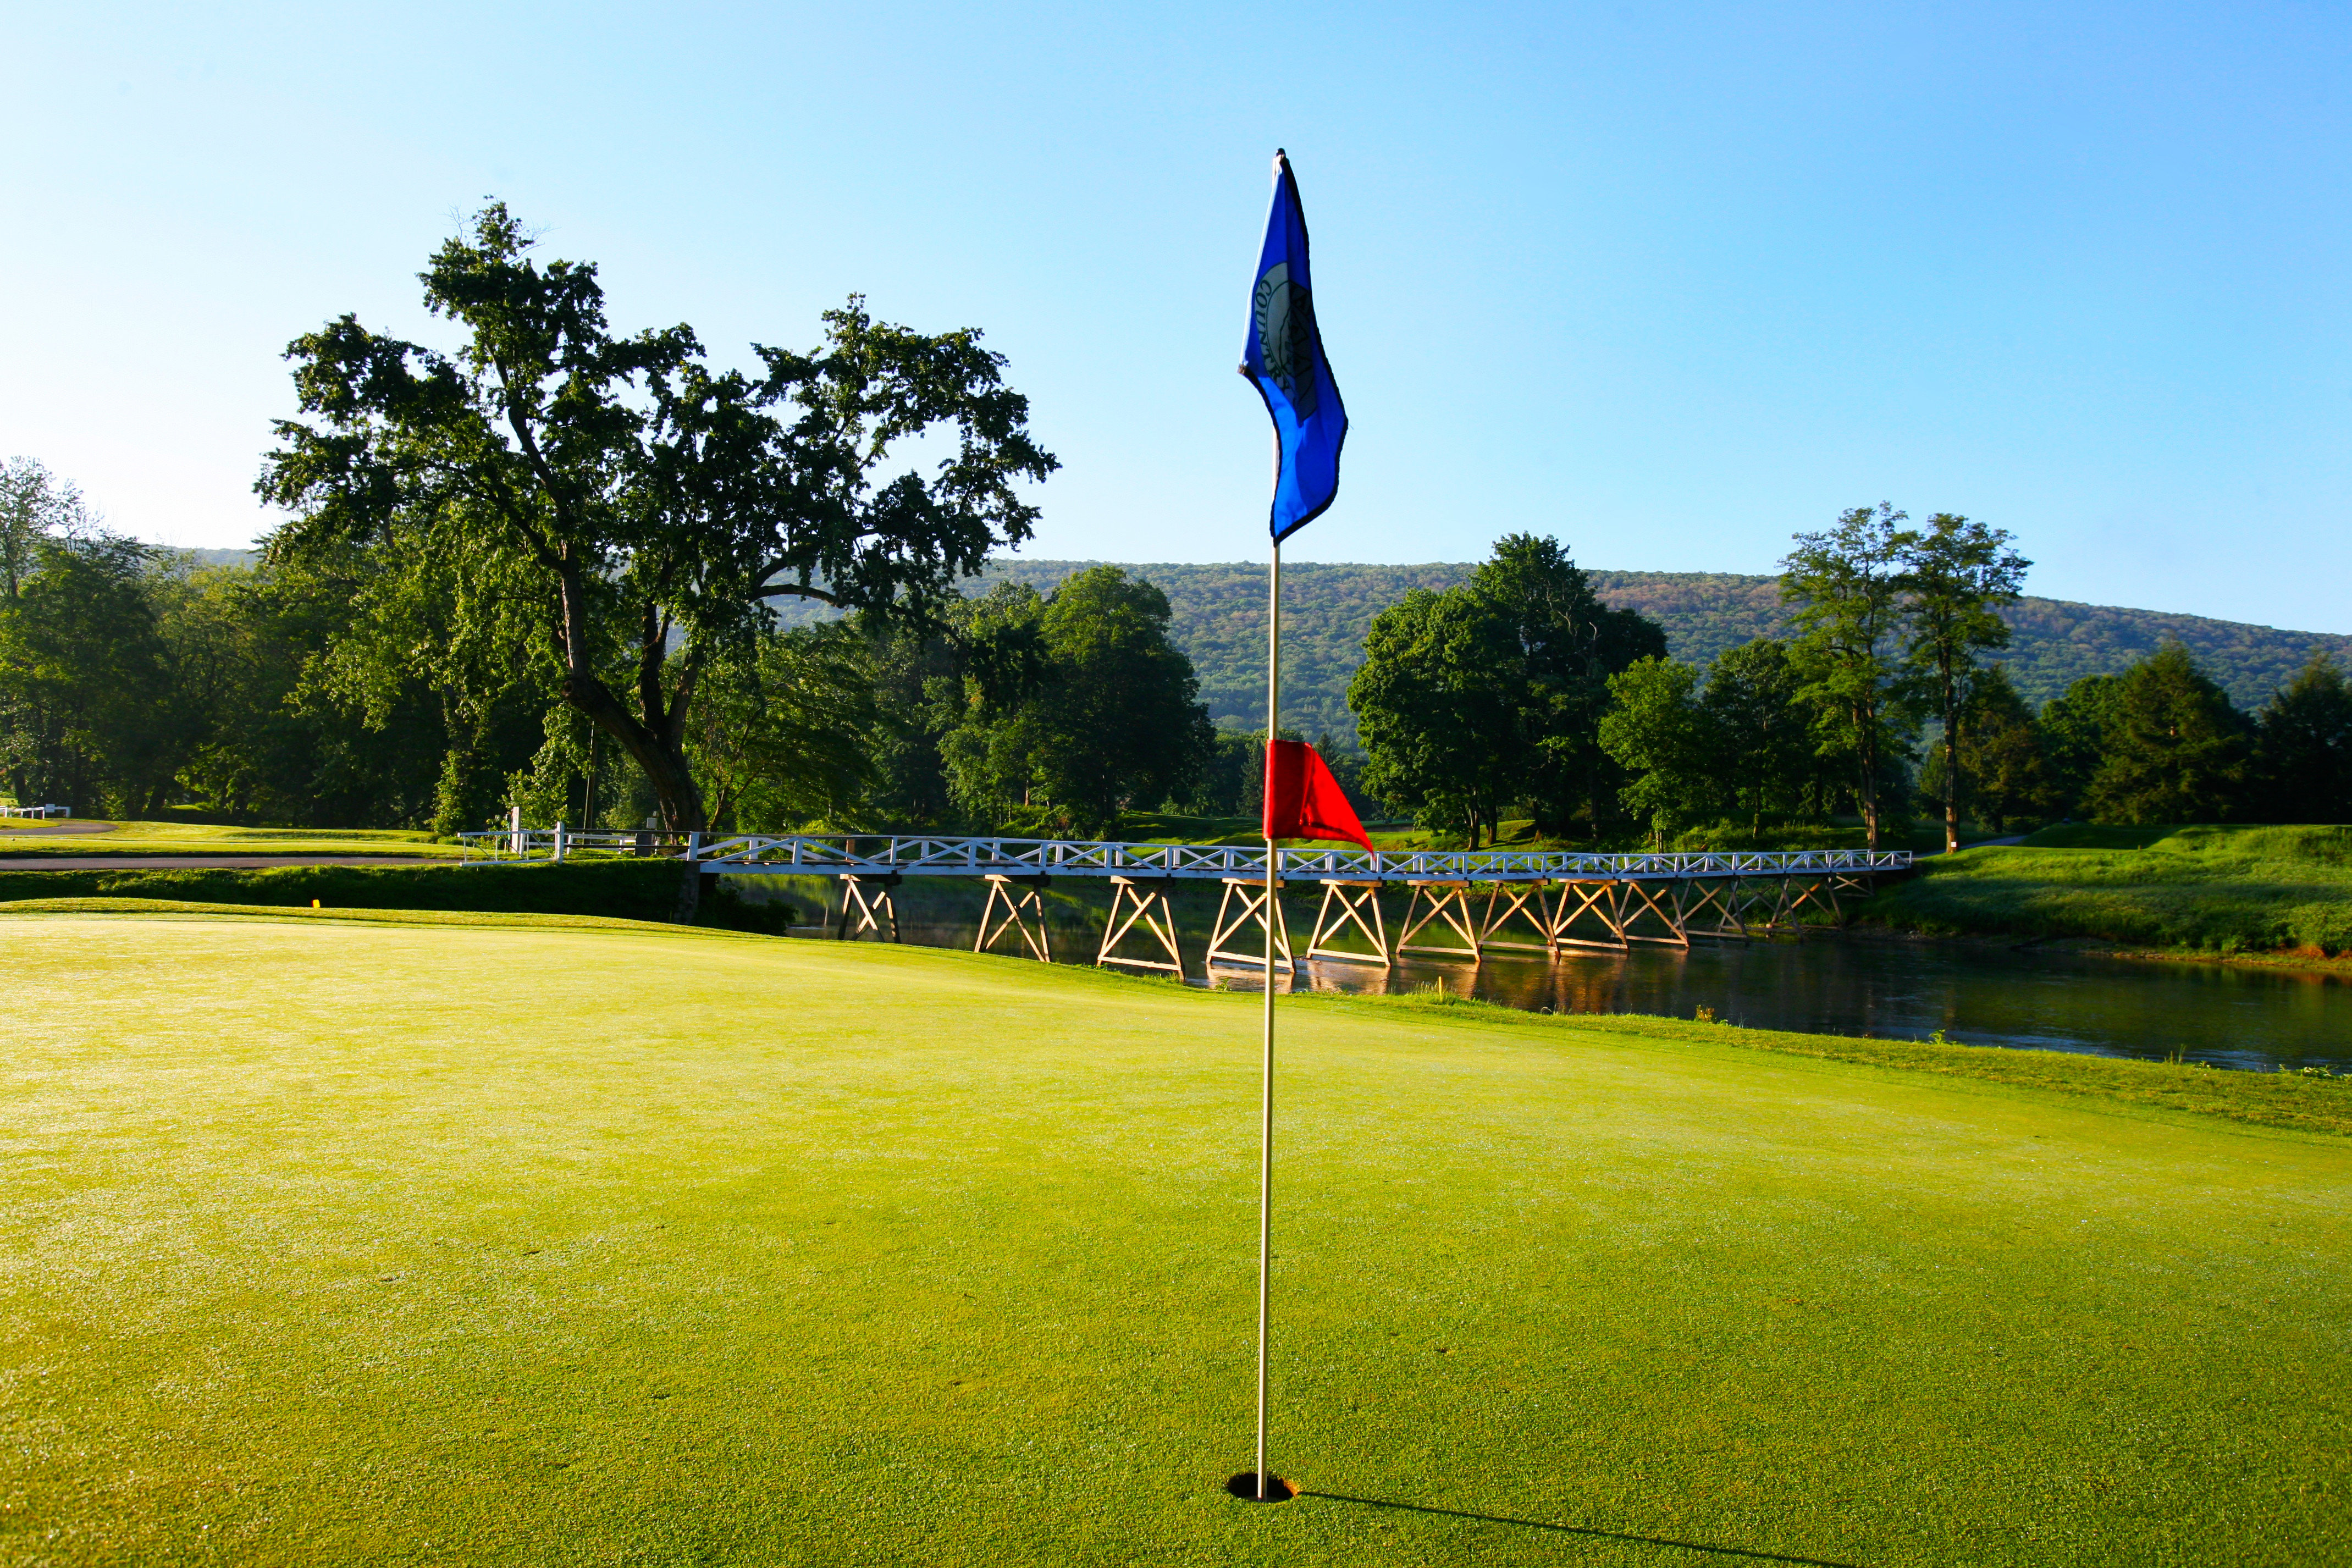 grass sky tree structure green field sport venue atmosphere of earth outdoor recreation sports lawn stadium Golf golf course recreation park lush